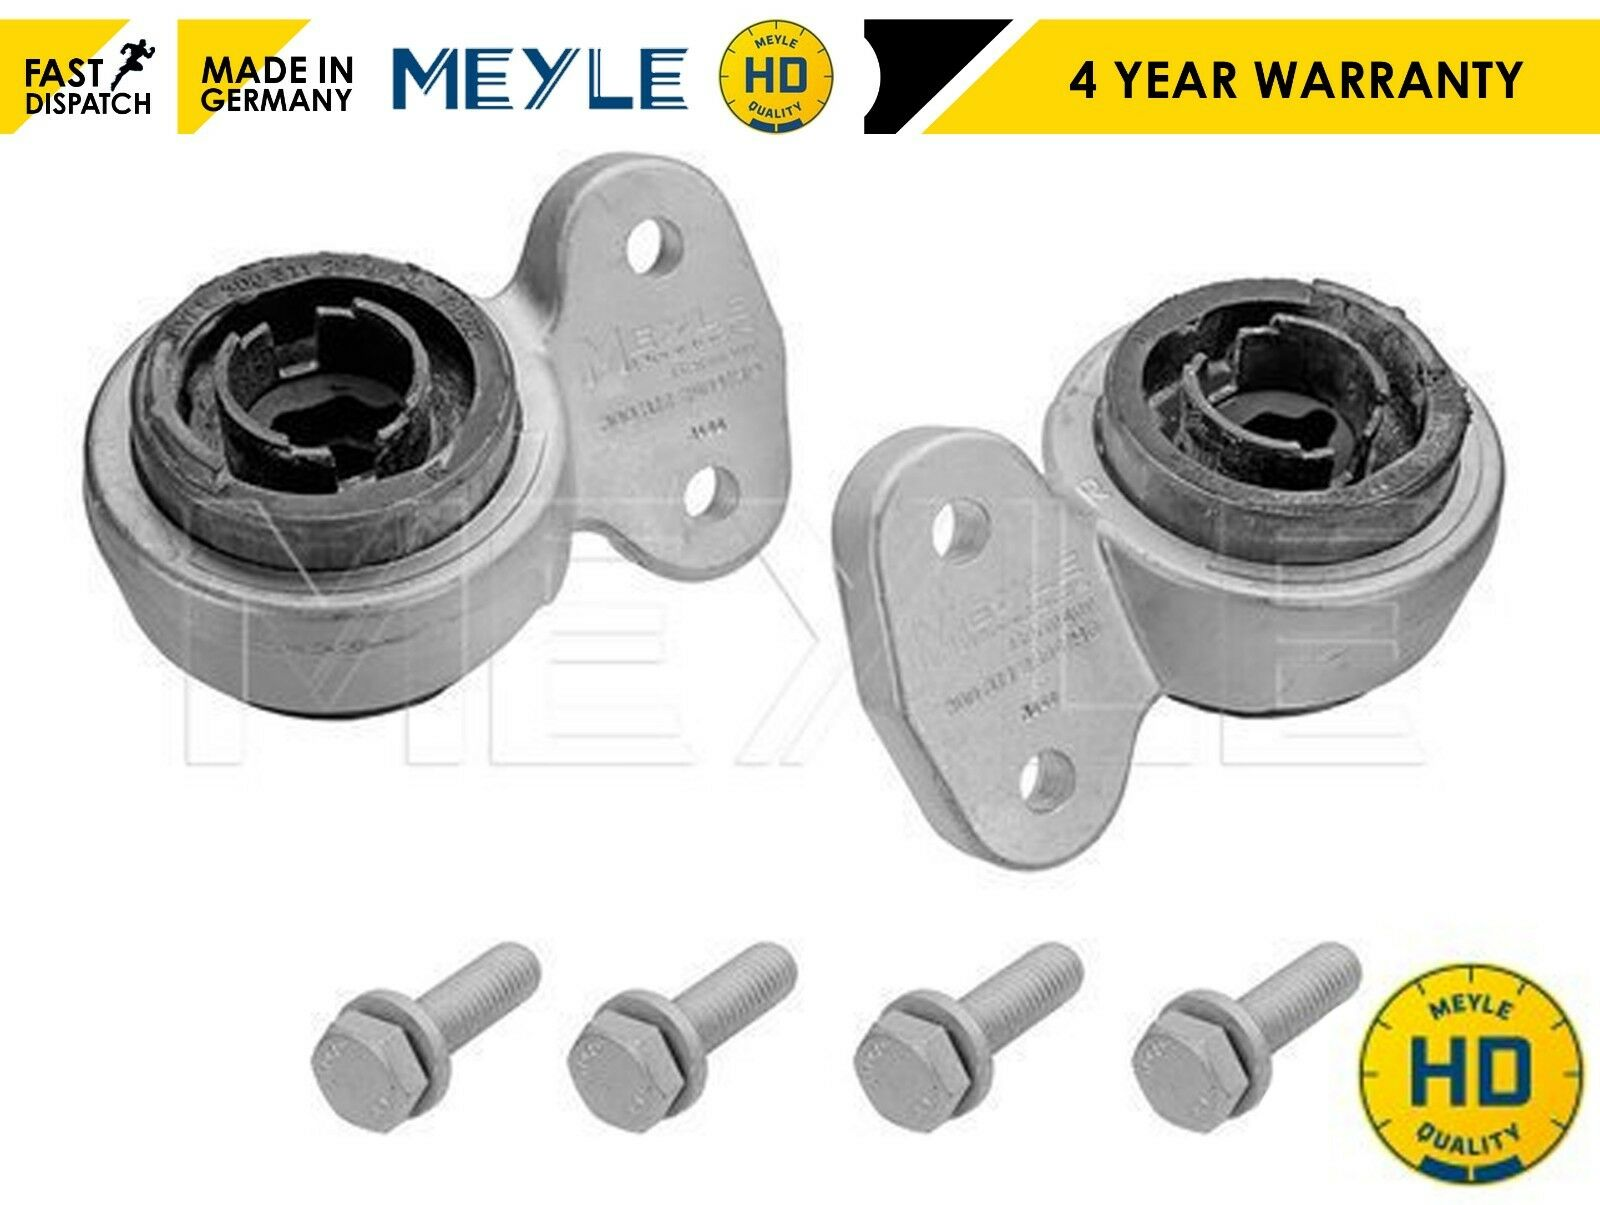 BMW E46 3 Series 316-330 Rear Coil Spring Suspension Part Replace 1998-2005